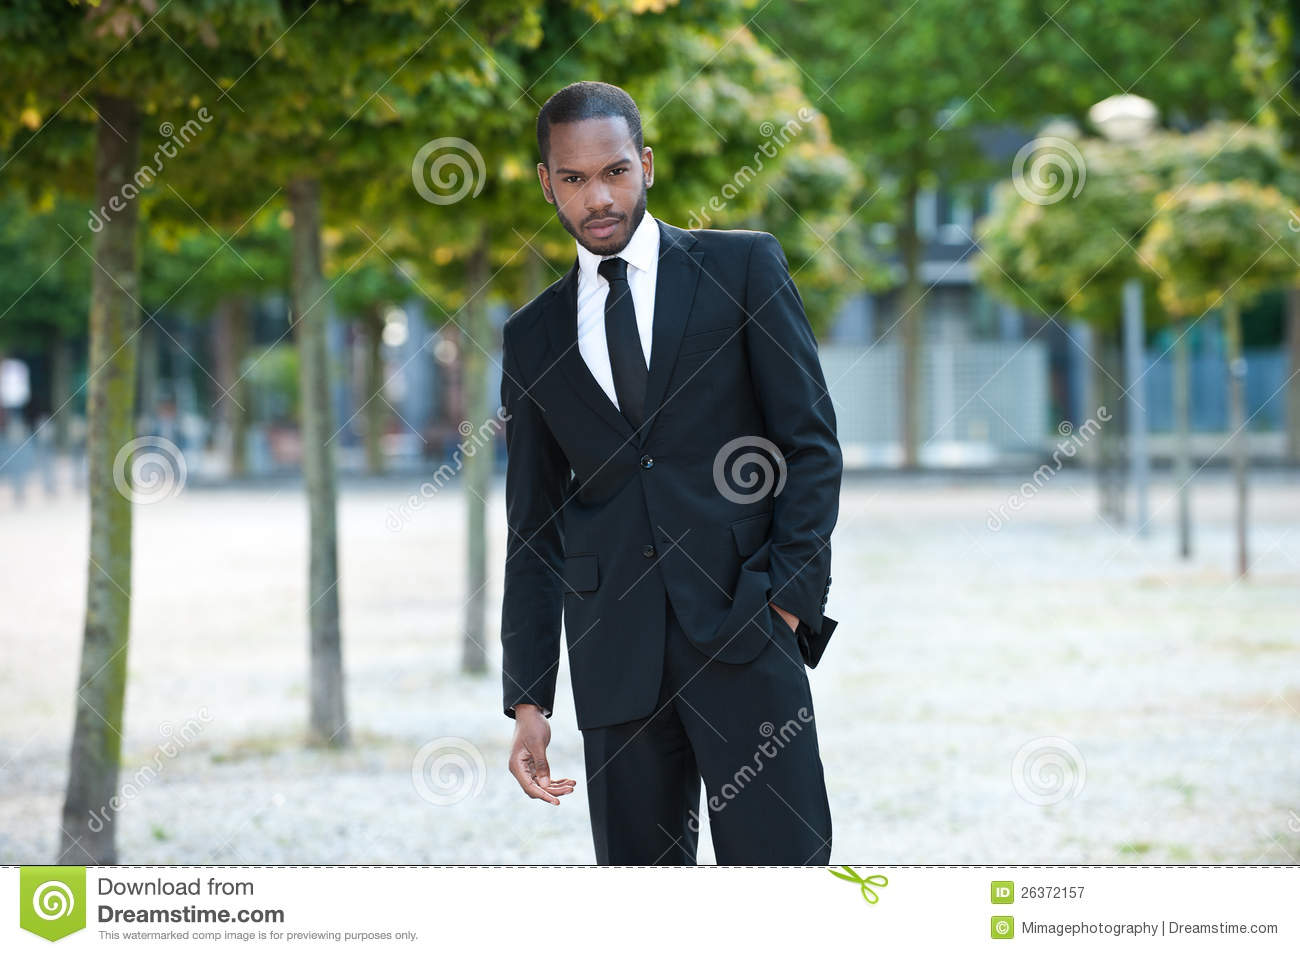 Young Black Male in a Suit Outside